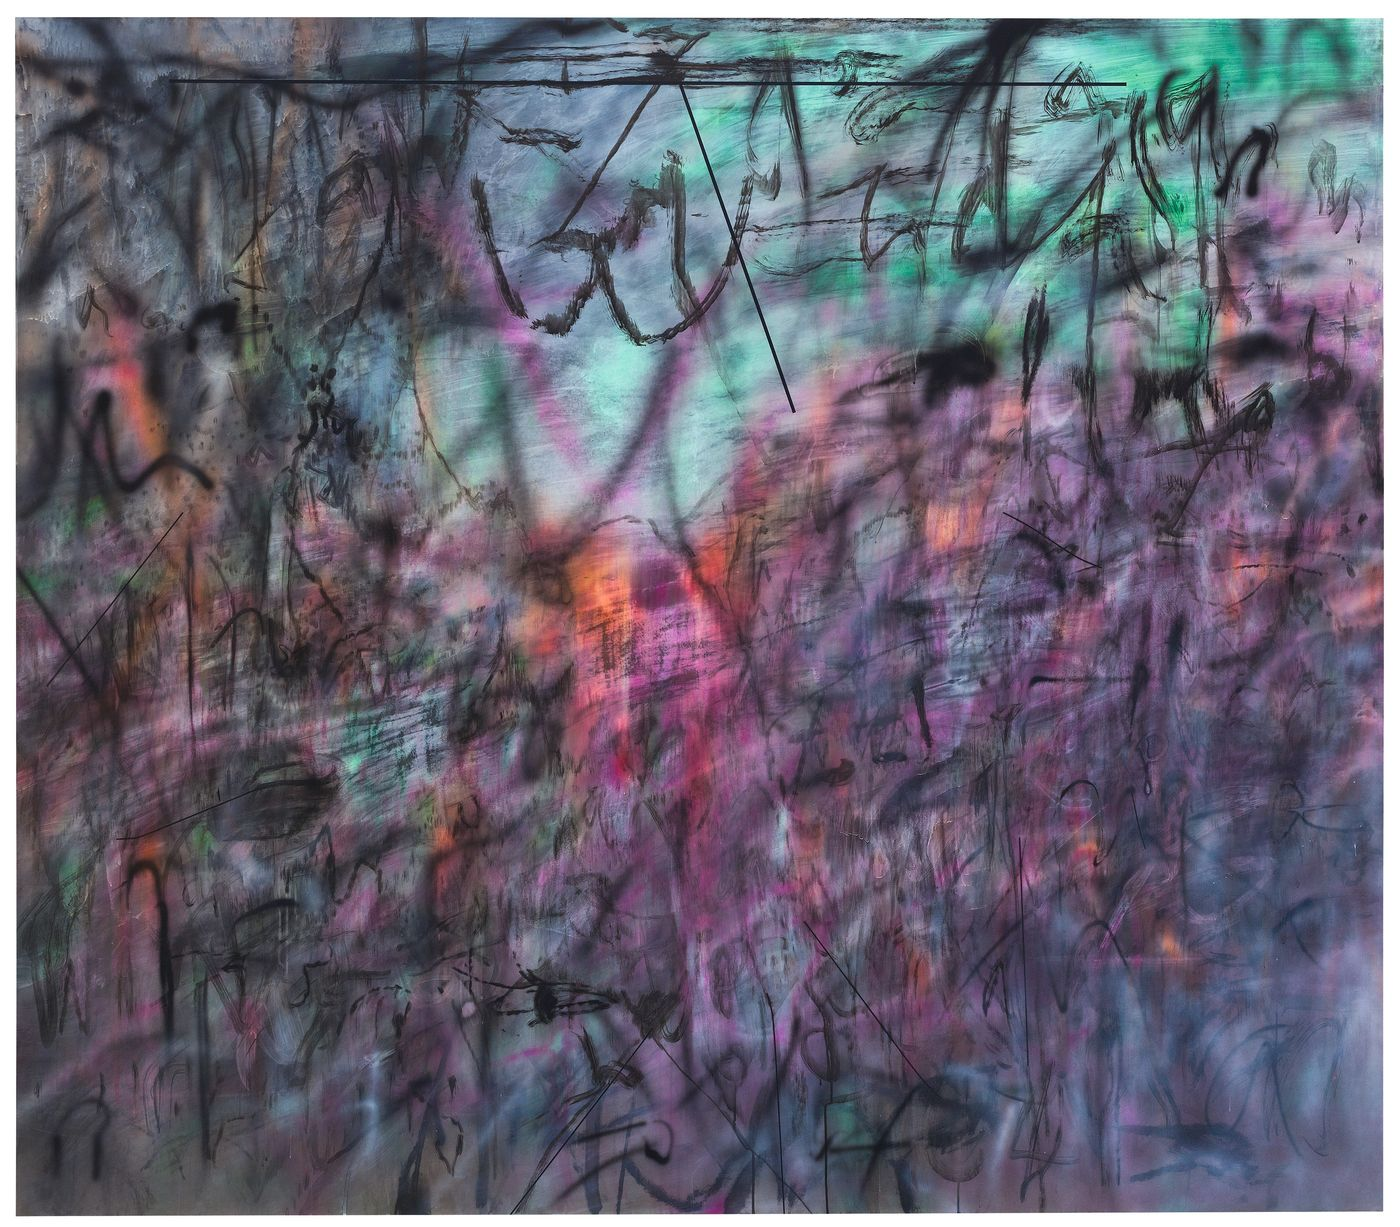 Phillips is pleased to sponsor the first retrospective of Julie Mehretu's groundbreaking work at LACMA. We sat down with curator Christine Y. Kim to learn more about the exhibition.